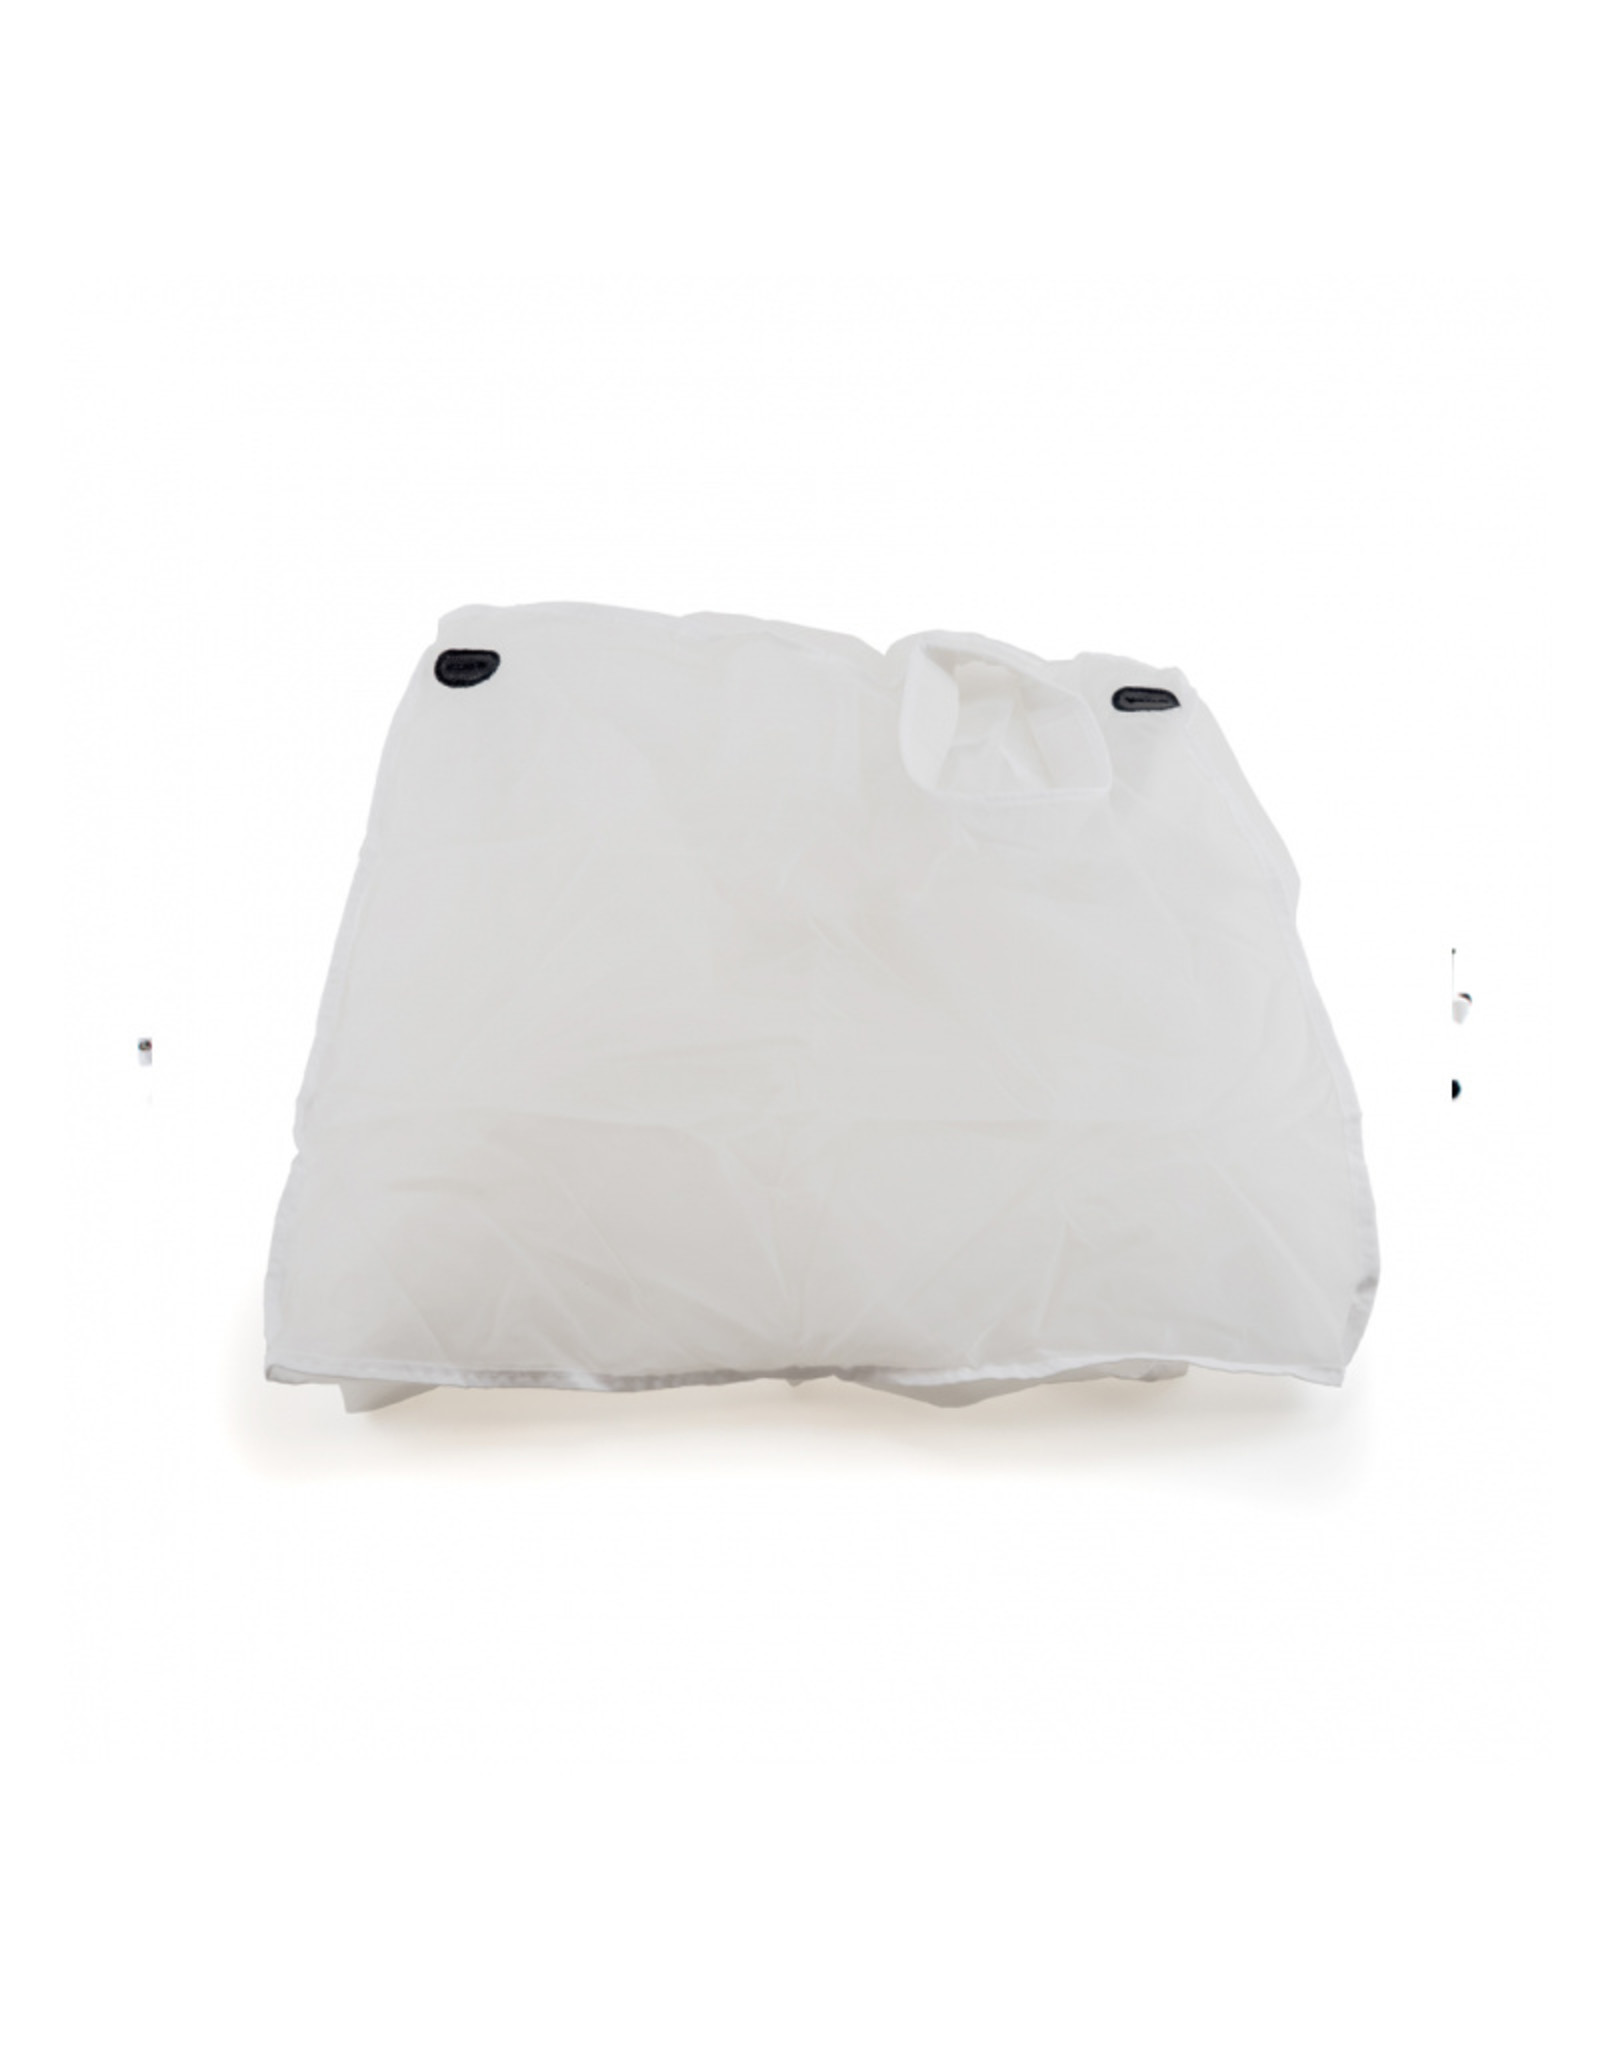 TWISTER TWISTER T4 WHITE (DRY) FILTER BAG 70 MICRON